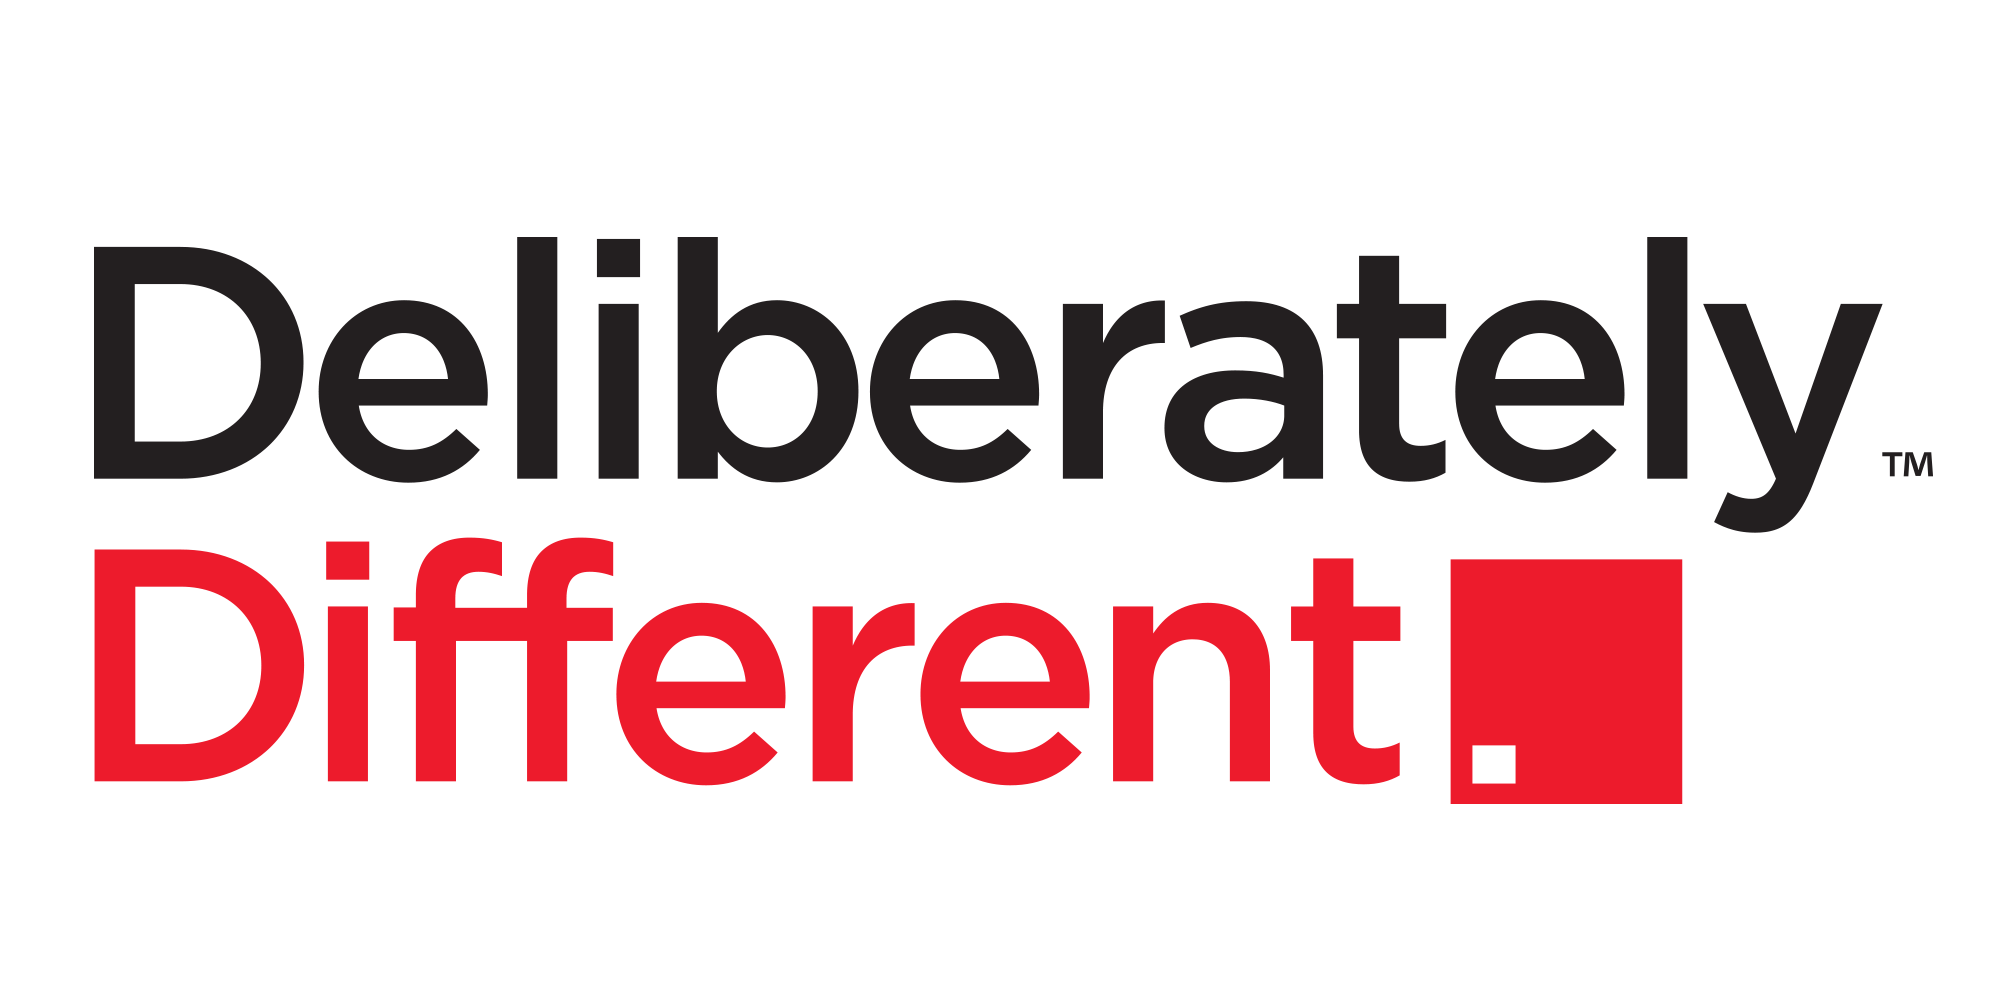 Logo-Deliberately-Different-Red.png